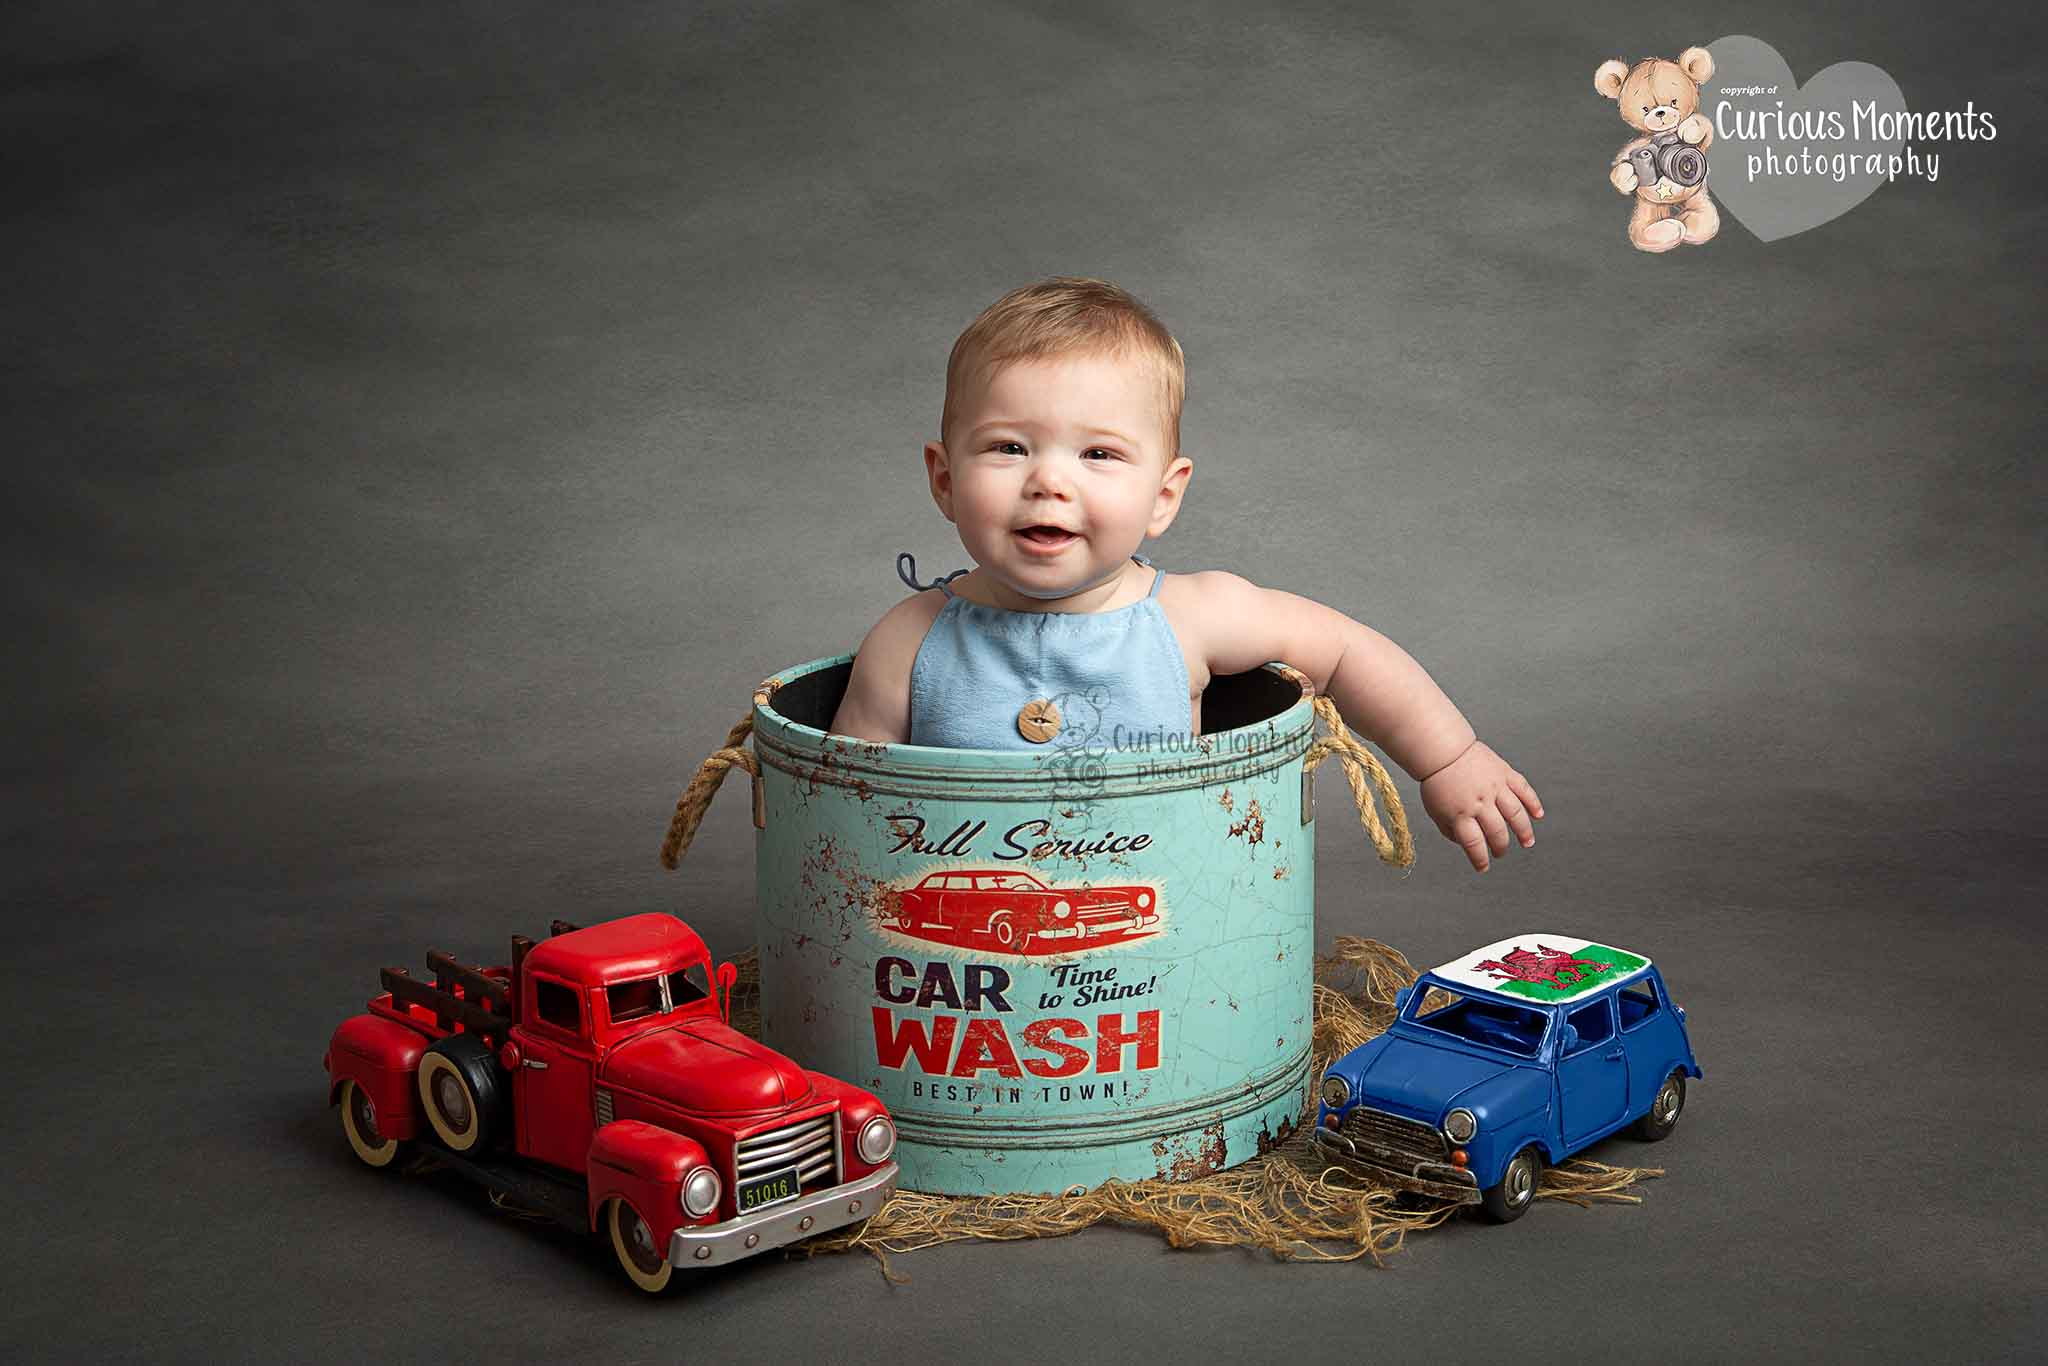 Baby boy say in a car wasy tub next to toy cars smiling at photographer